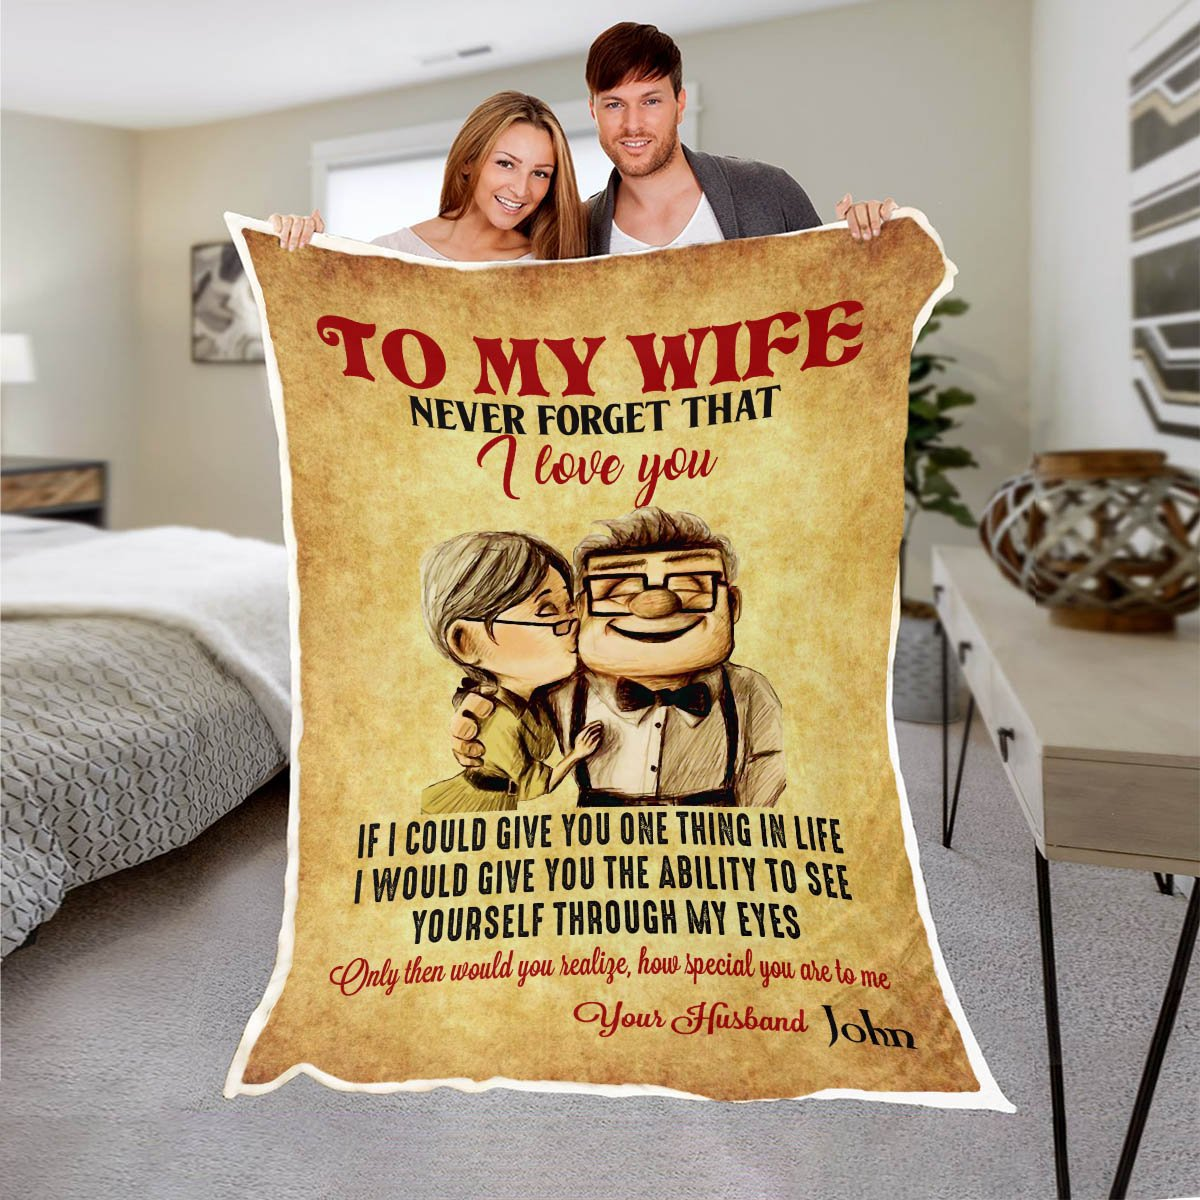 To my wife never forget that i love you blanket 3